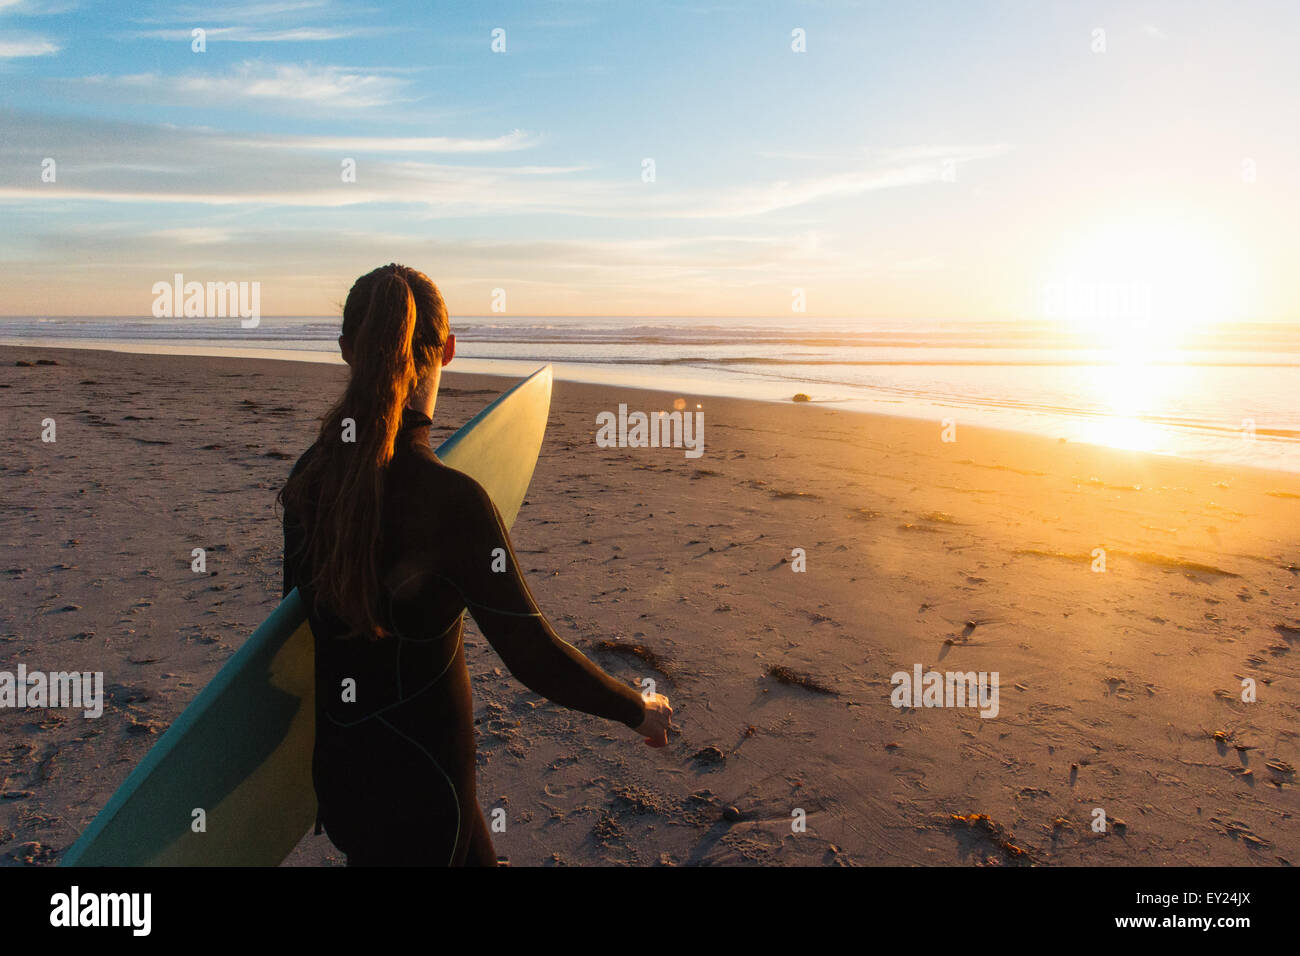 Rear view of female surfer walking on beach toward sea, Cardiff-By-The-Sea, California, USA - Stock Image